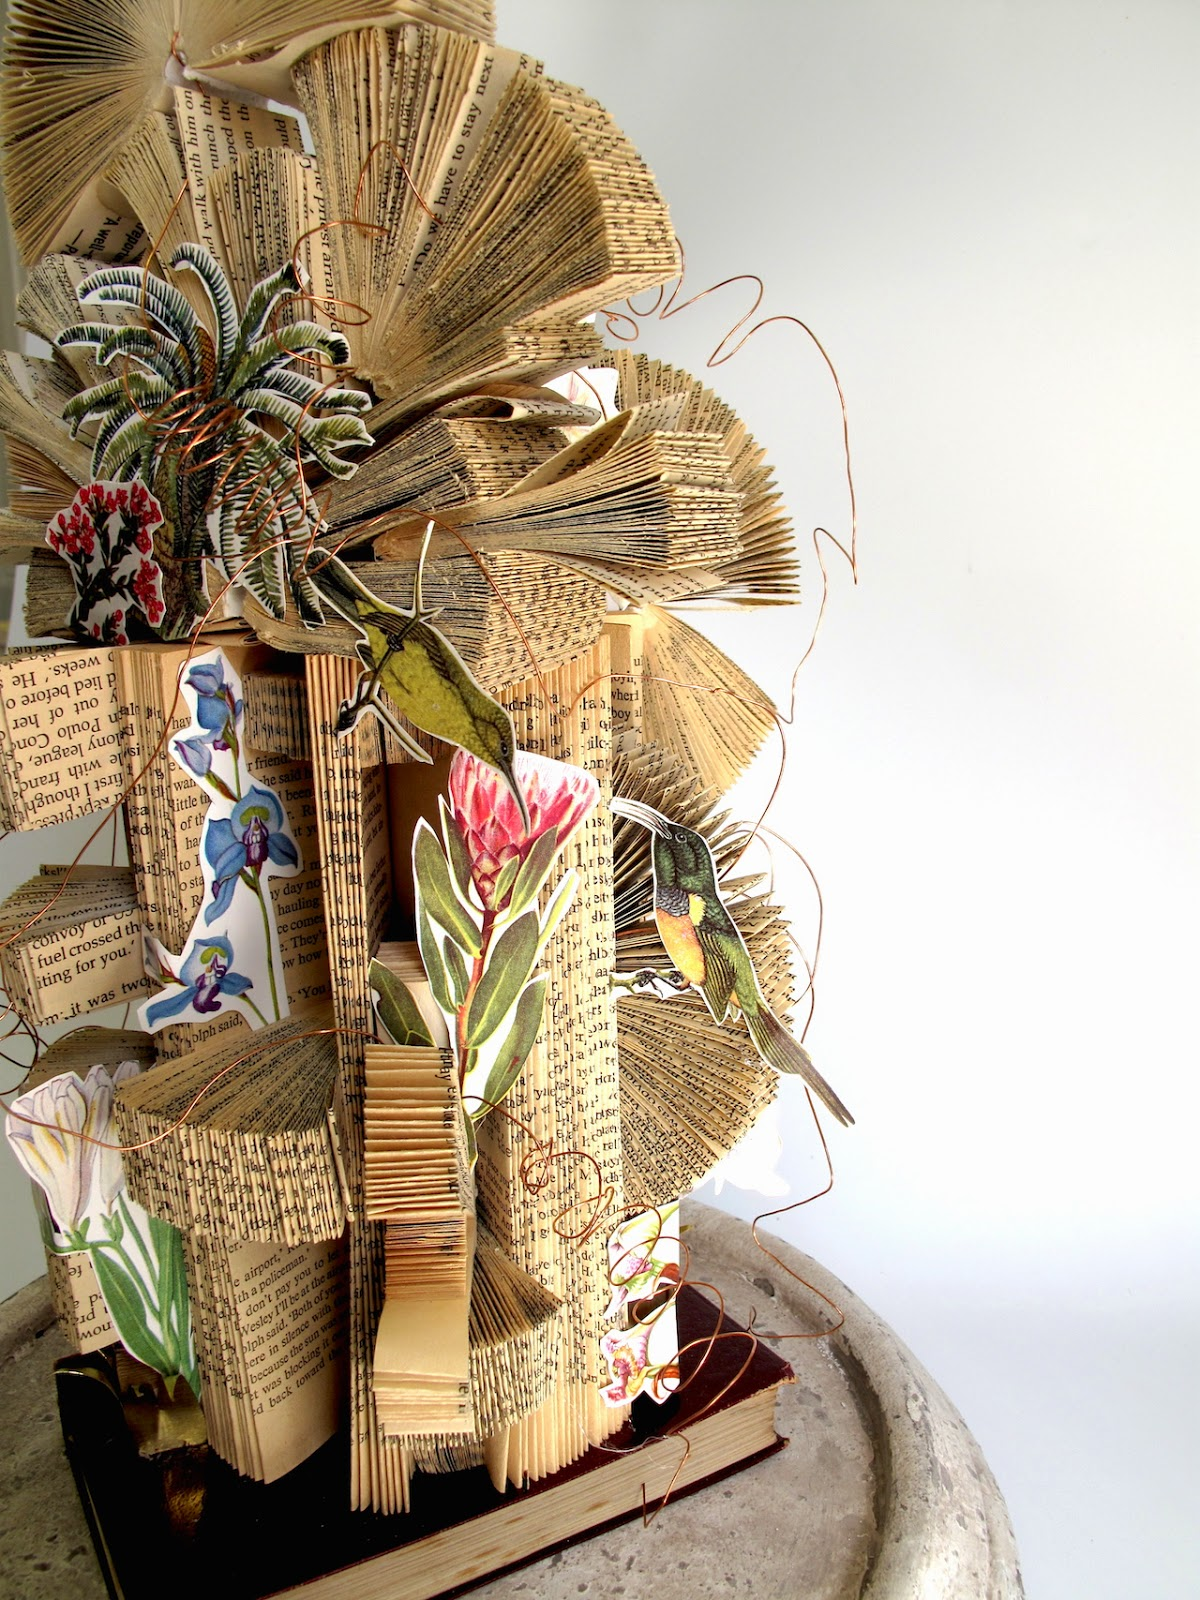 Book Art: The birds in the books - Keri Muller (simpleintrigue.com)